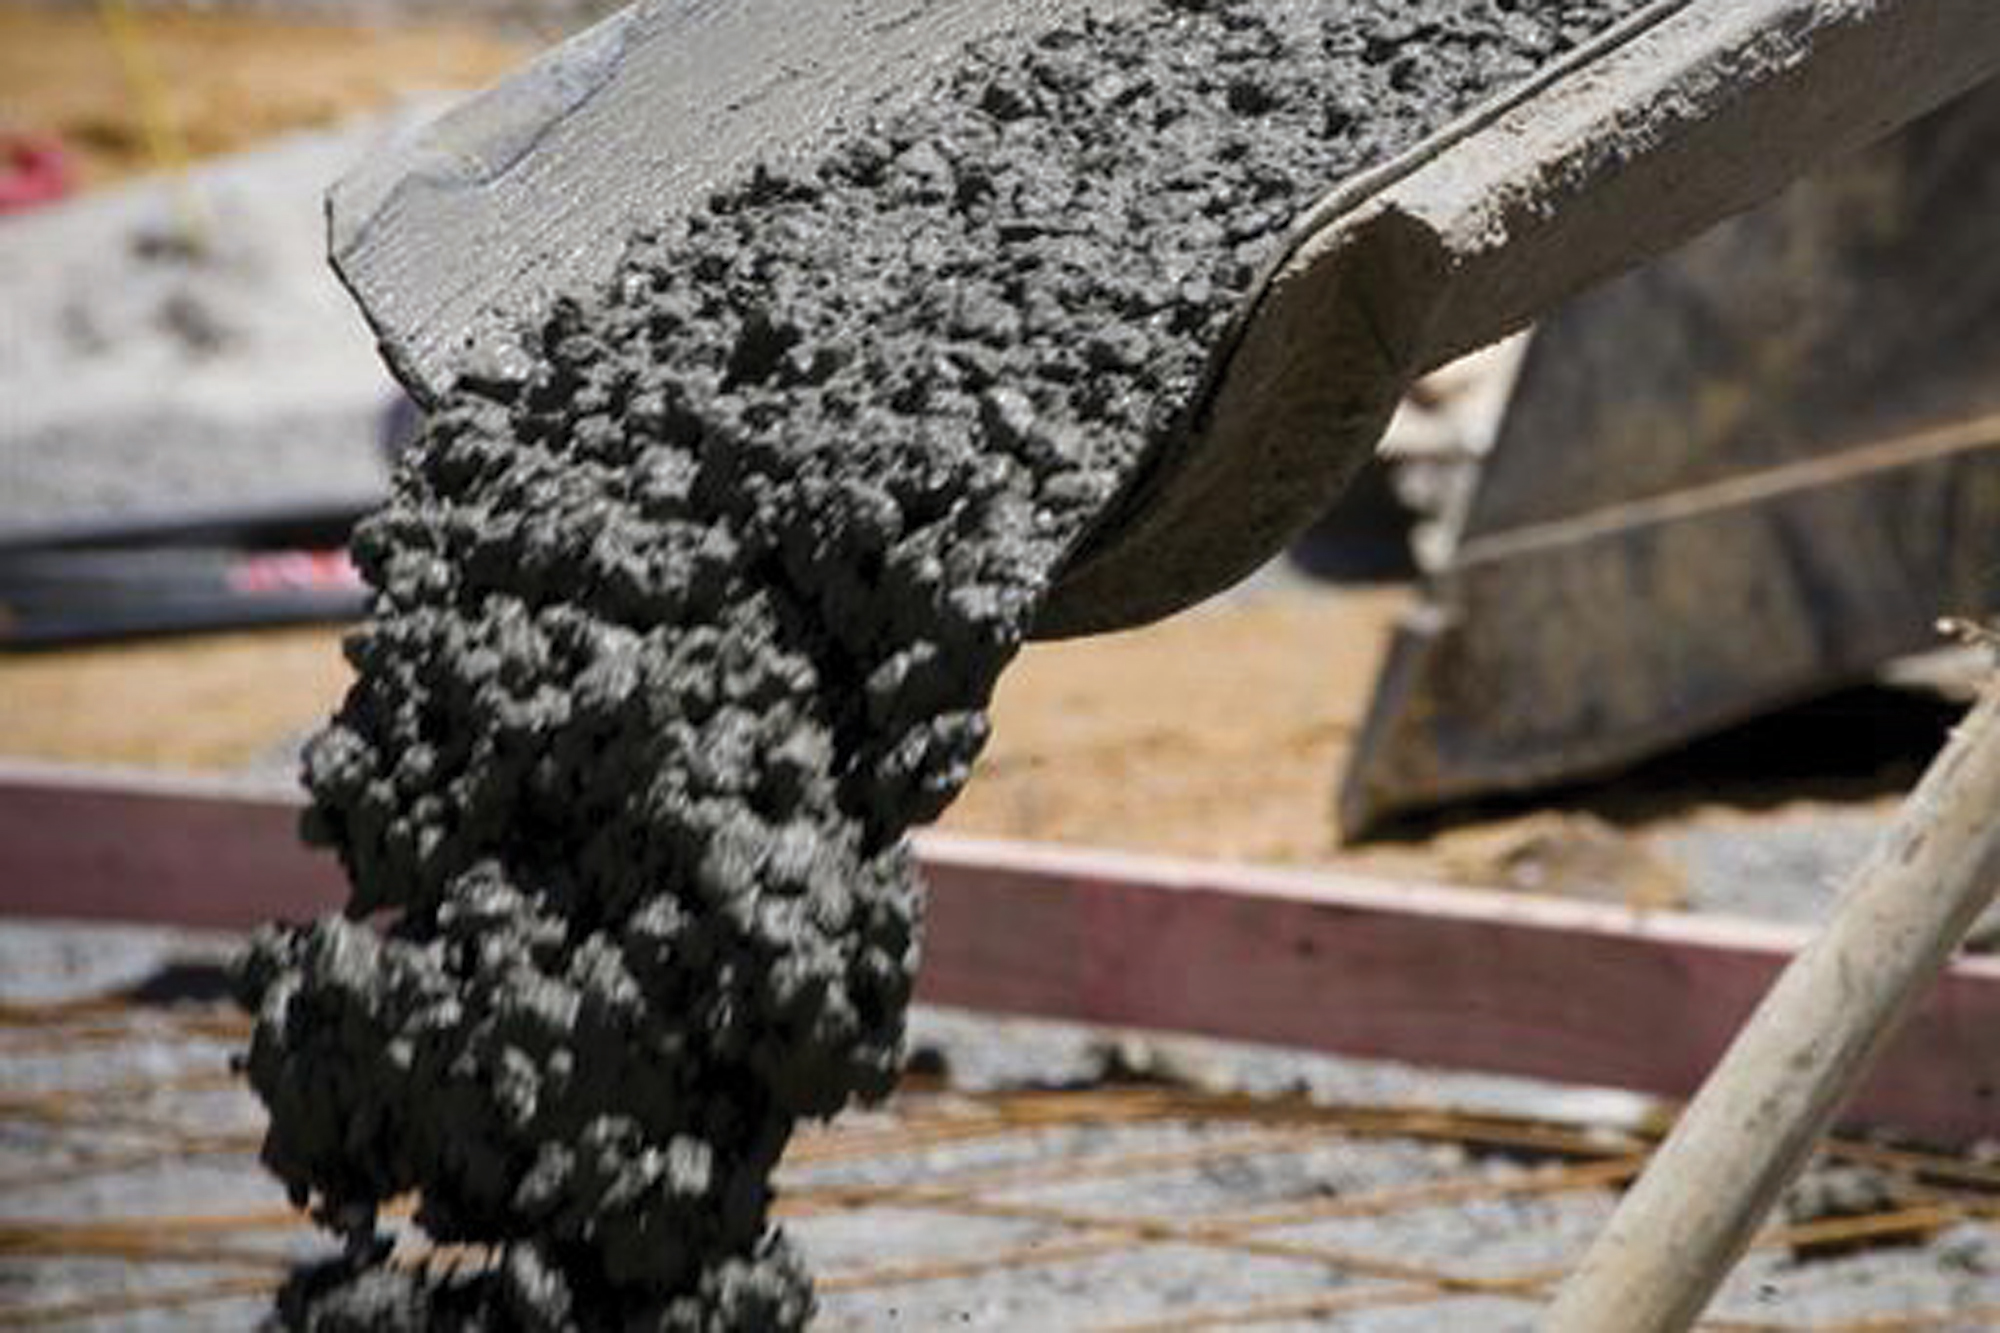 High Early Strength Concrete: A new dimension in concrete technology | B2B  Purchase | Concrete